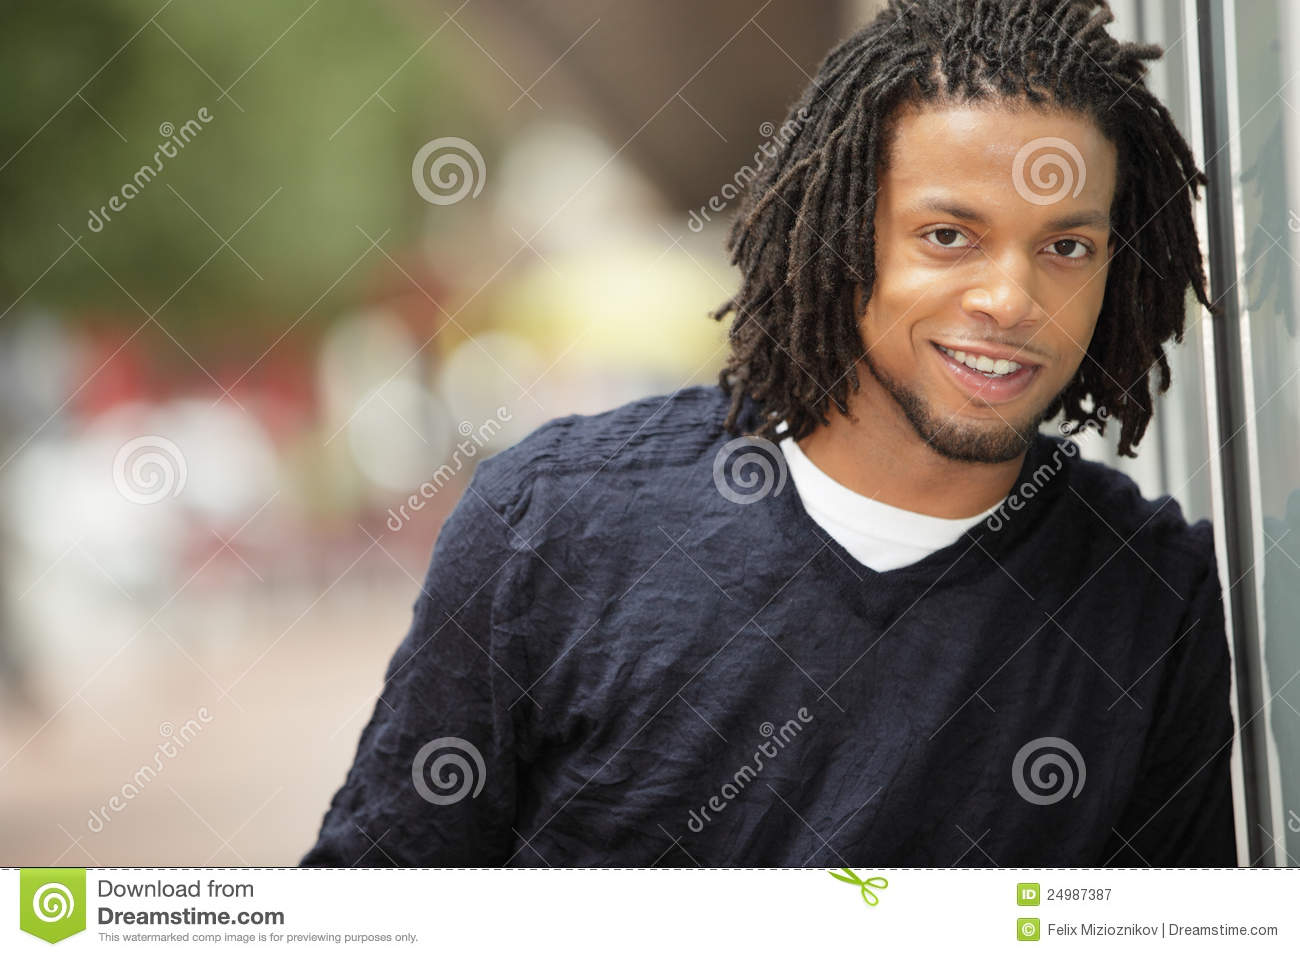 Jamaican Man Smiling Royalty Free Stock Photography